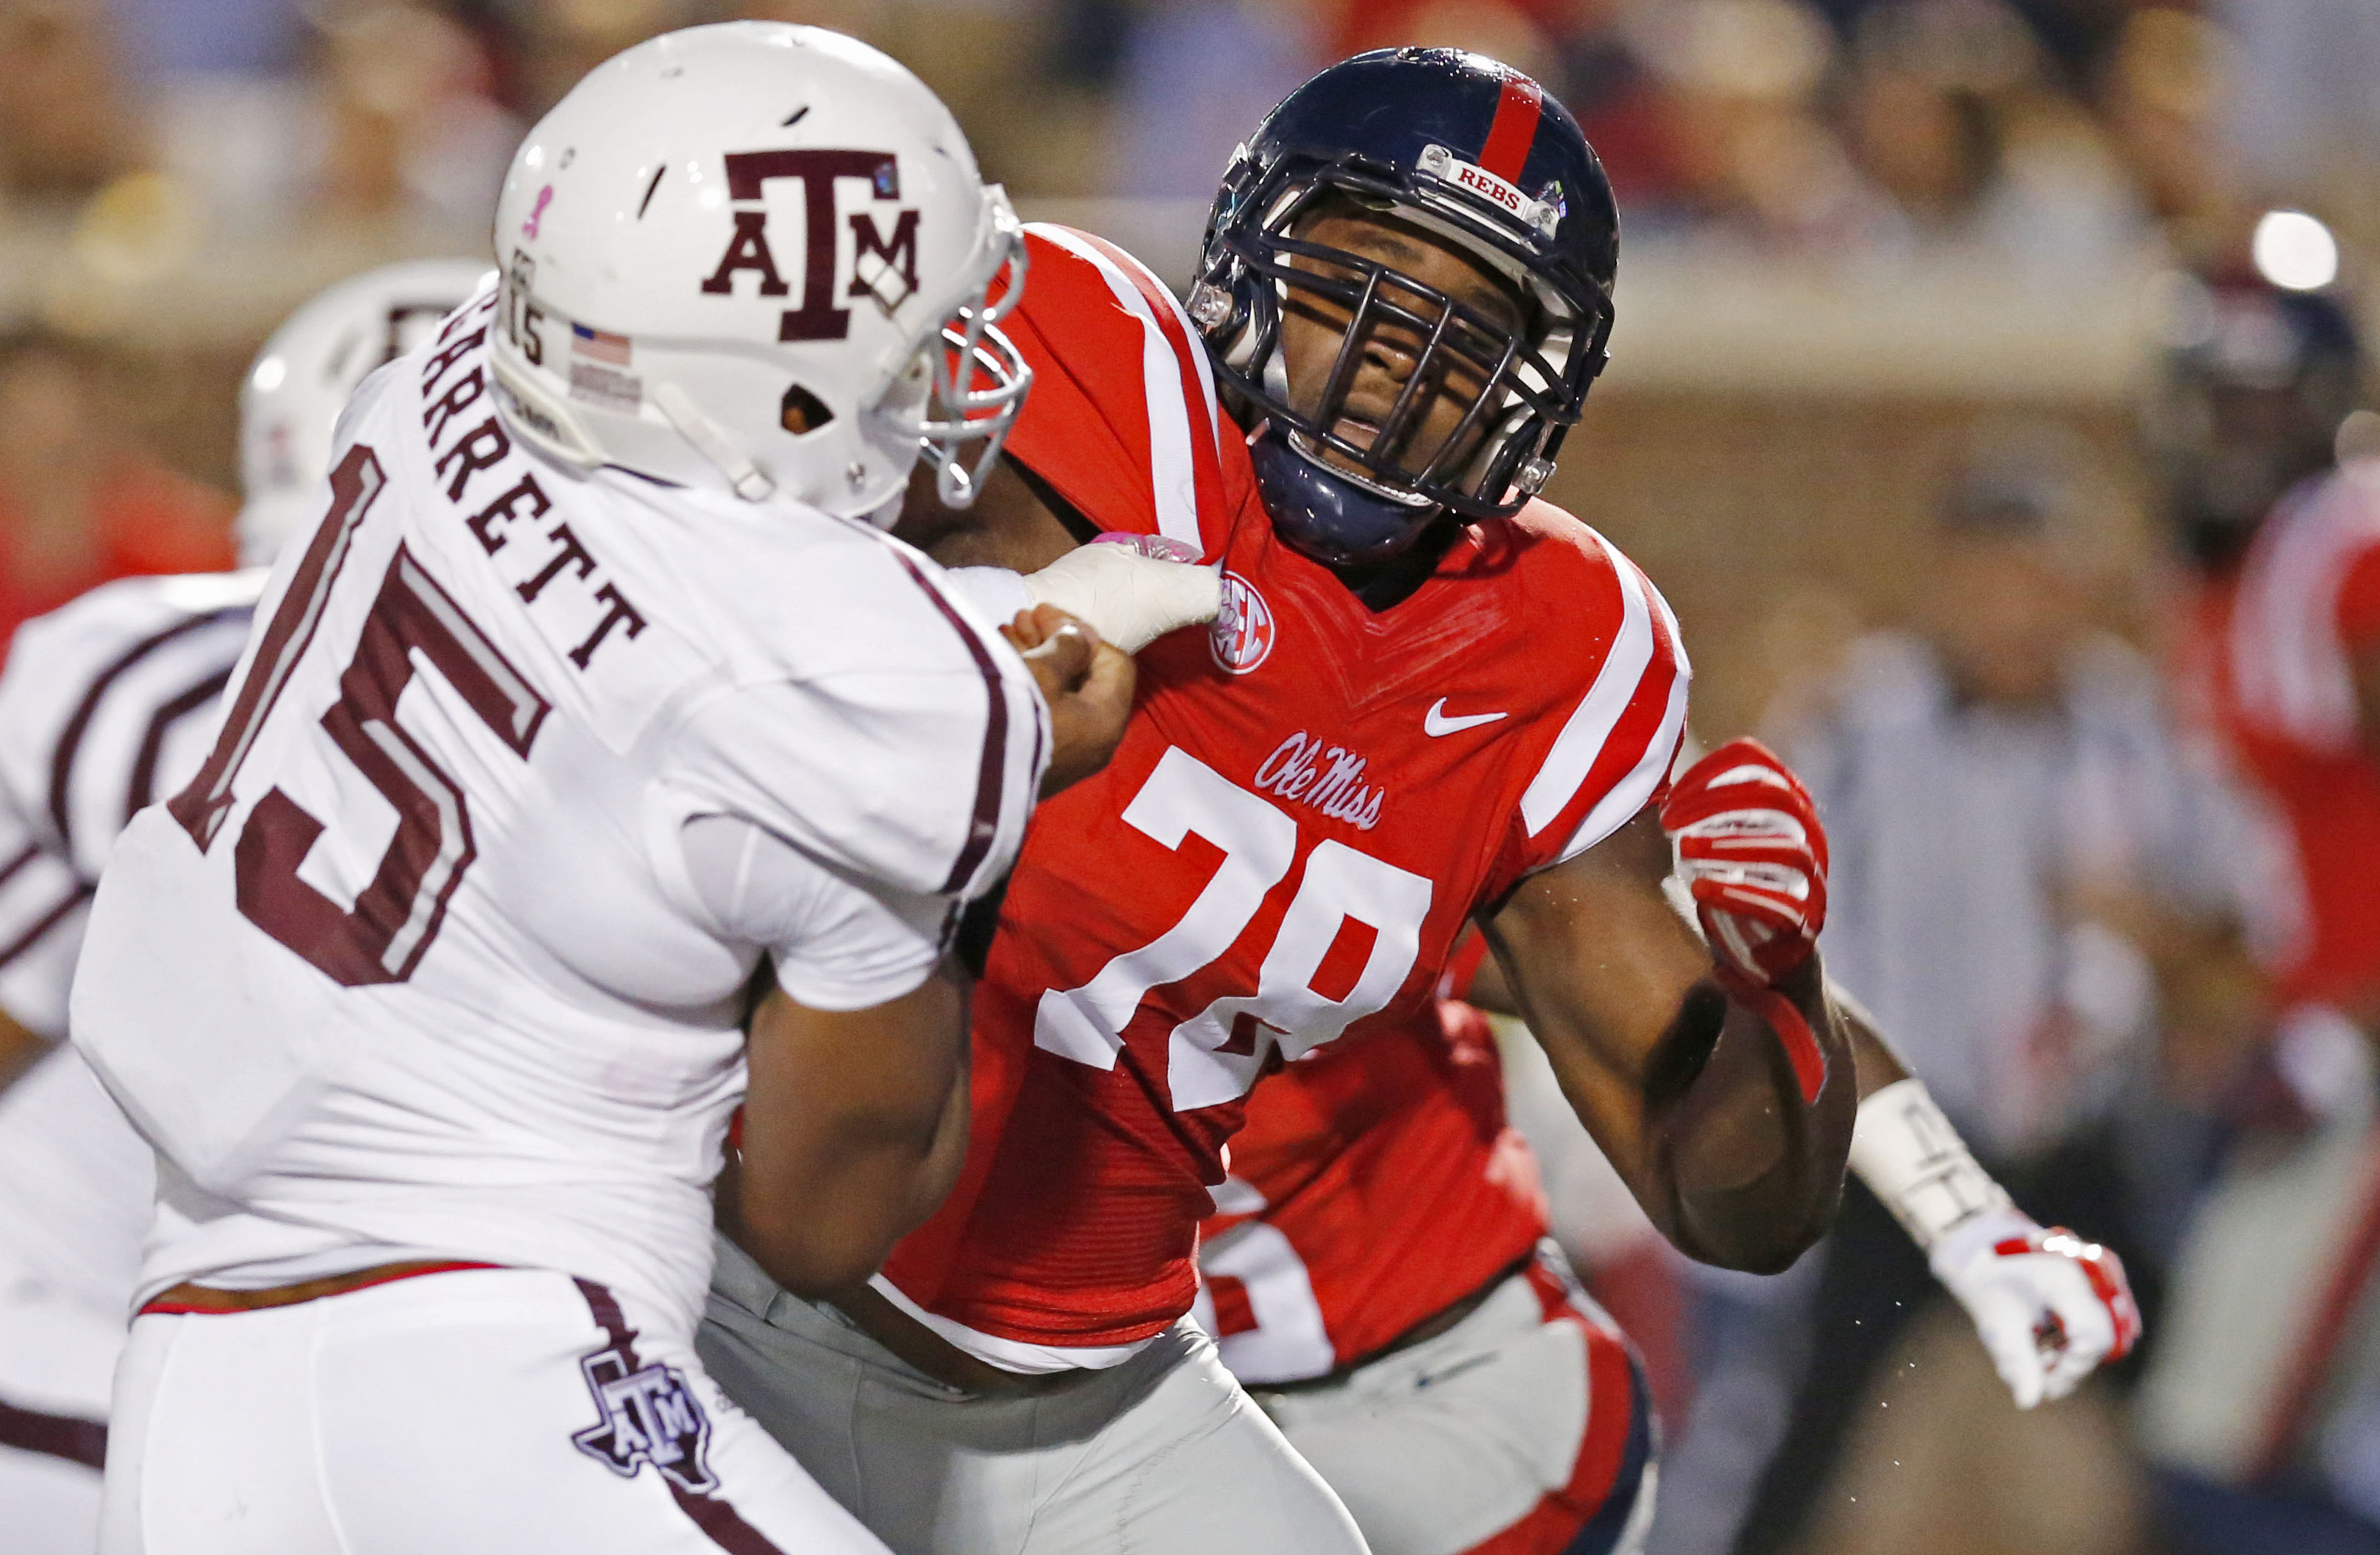 FILE - In this Oct. 24, 2015, file photo, Texas A&M defensive lineman Myles Garrett (15) is locked up by Mississippi offensive lineman Laremy Tunsil (78) during the first half of their NCAA college football game in Oxford, Miss. Some of the Southeastern C